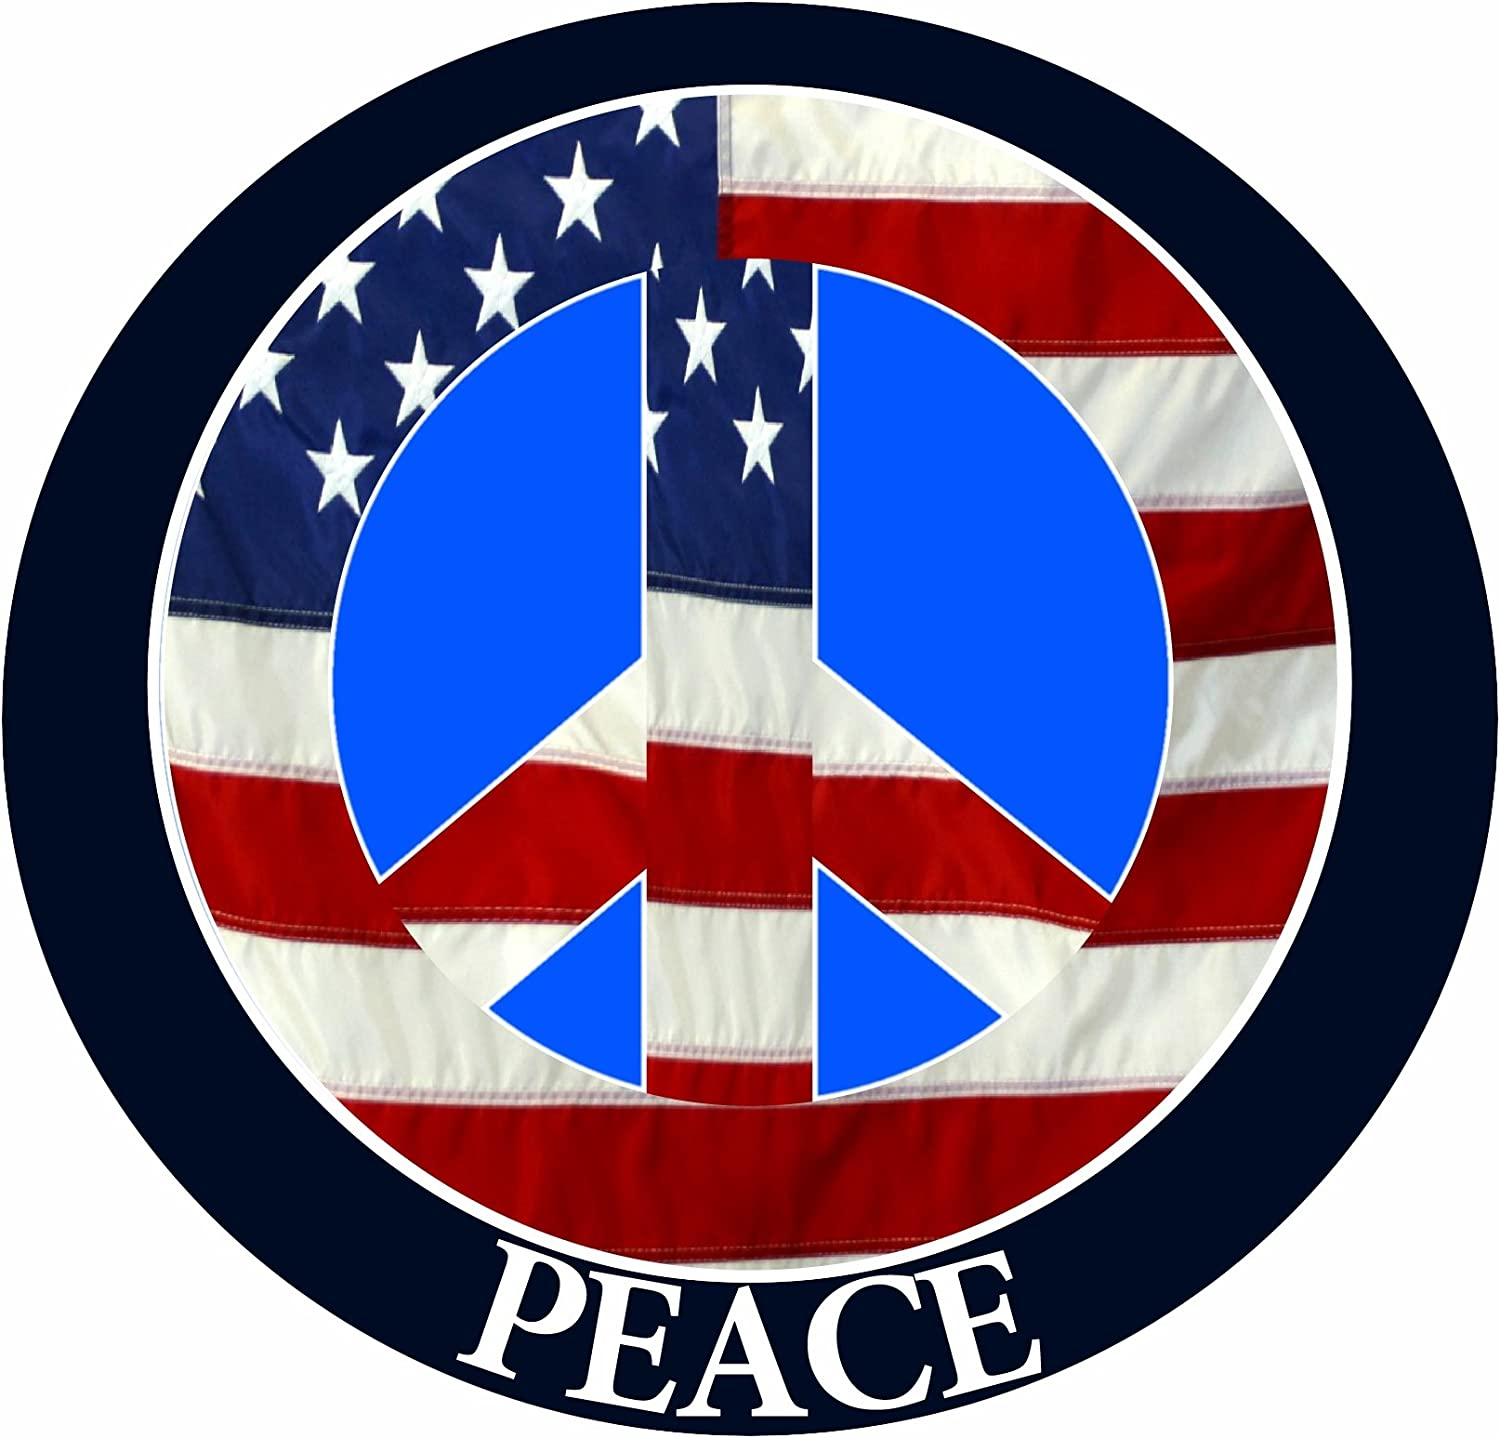 E&S Pets Peace Car Magnet with American Flag Peace Sign Design in The Center Covered in UV Gloss for Weather and Fading Protection Circle Shaped Magnet Measures 5.25 Inches Diameter